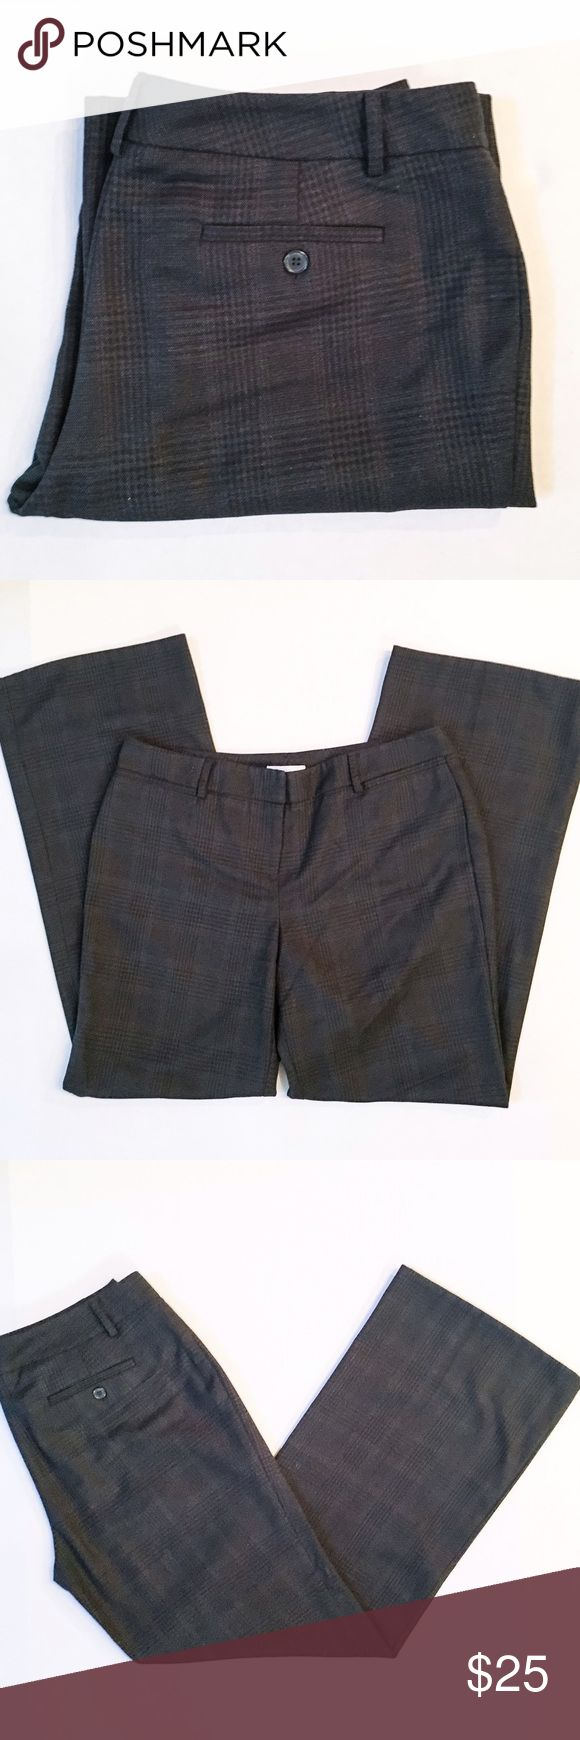 """New York & Company Dark Gray/Black Dress Pants Sleek and stylish dress pants from New York & Company! Straight leg and flattering fit that is perfect for work or a night out on the town! Dark gray and black Plaid print with a poly/rayon blend, and no front pockets. Size 10 petite and the waist measures approx 17"""" across, rise is about 9.5"""", and inseam is approx 29.75"""". These pants are preloved EUC with no apparent flaws, and lots of life left! New York & Company Pants Straight Leg"""